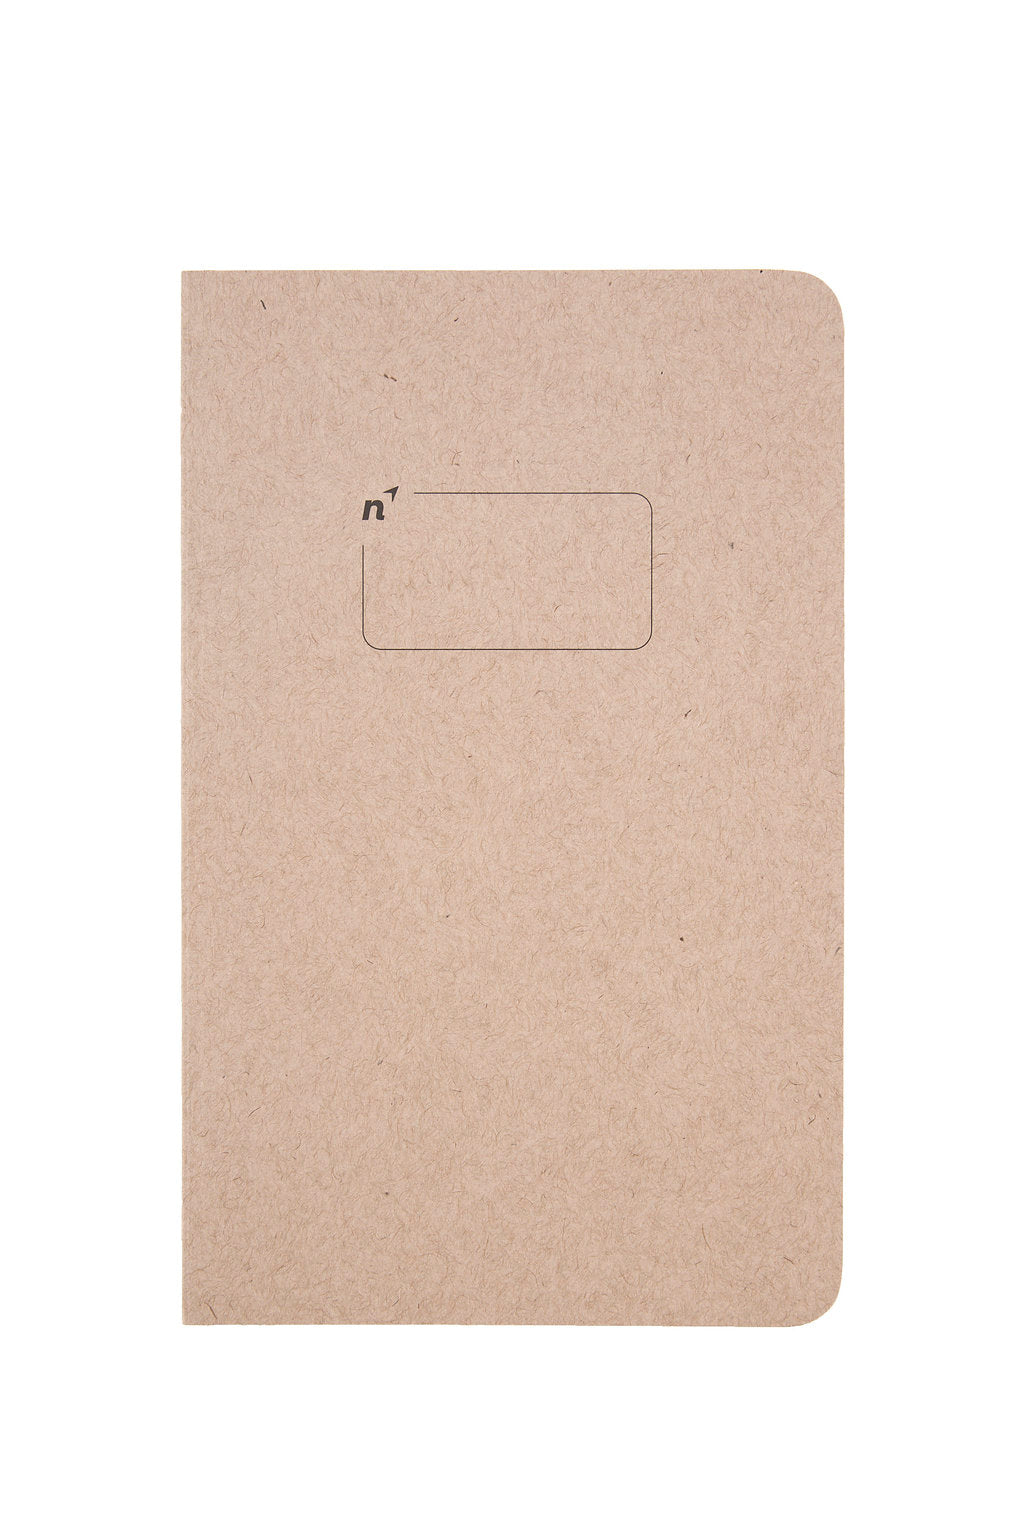 Blank 5x8 Notebook, 96 Pages